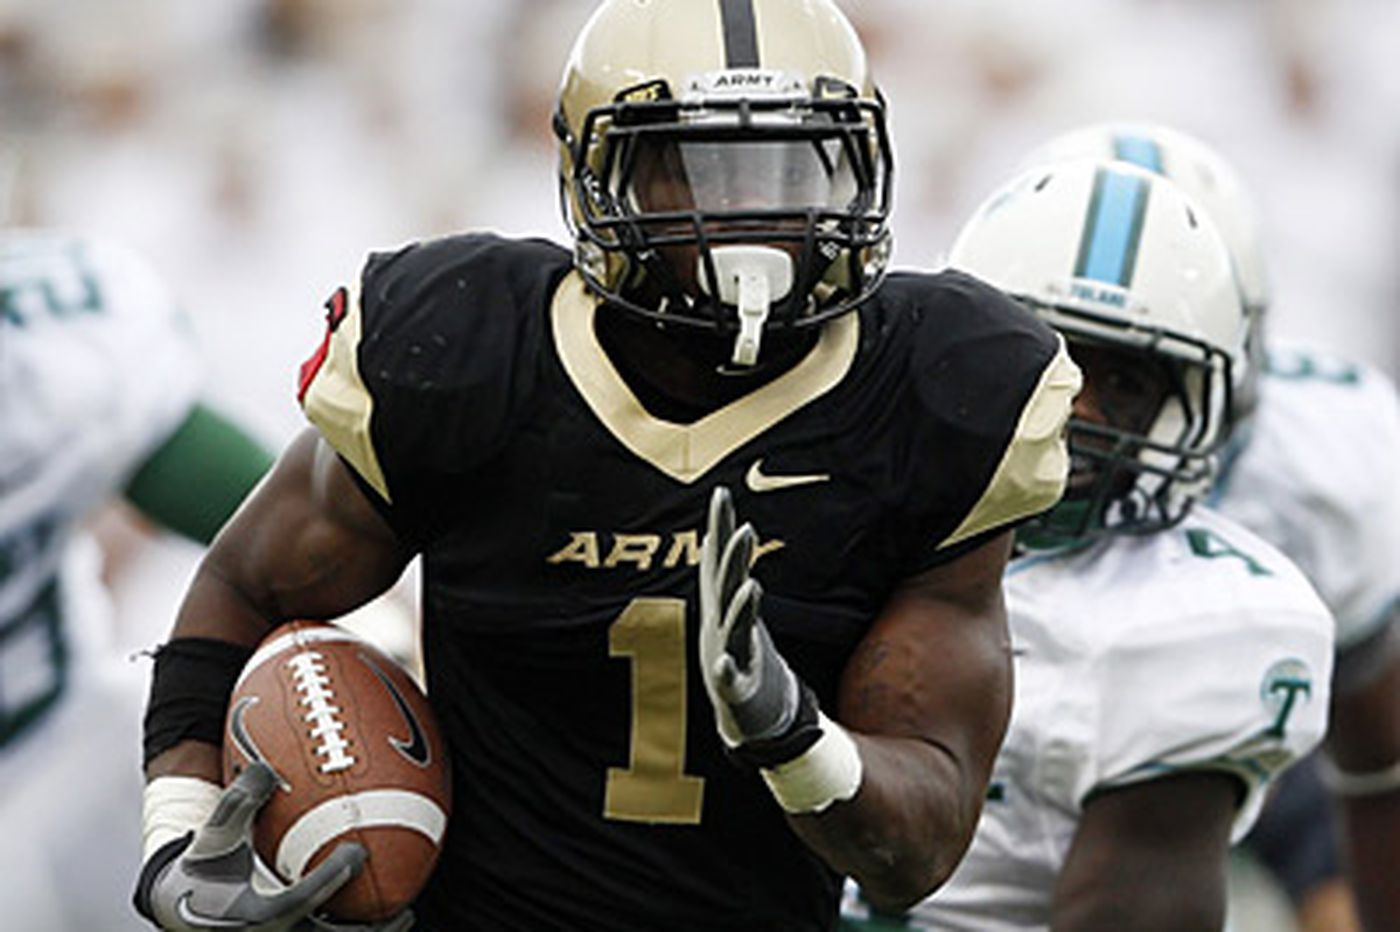 West Catholic grads on opposite sides of Army-Navy game